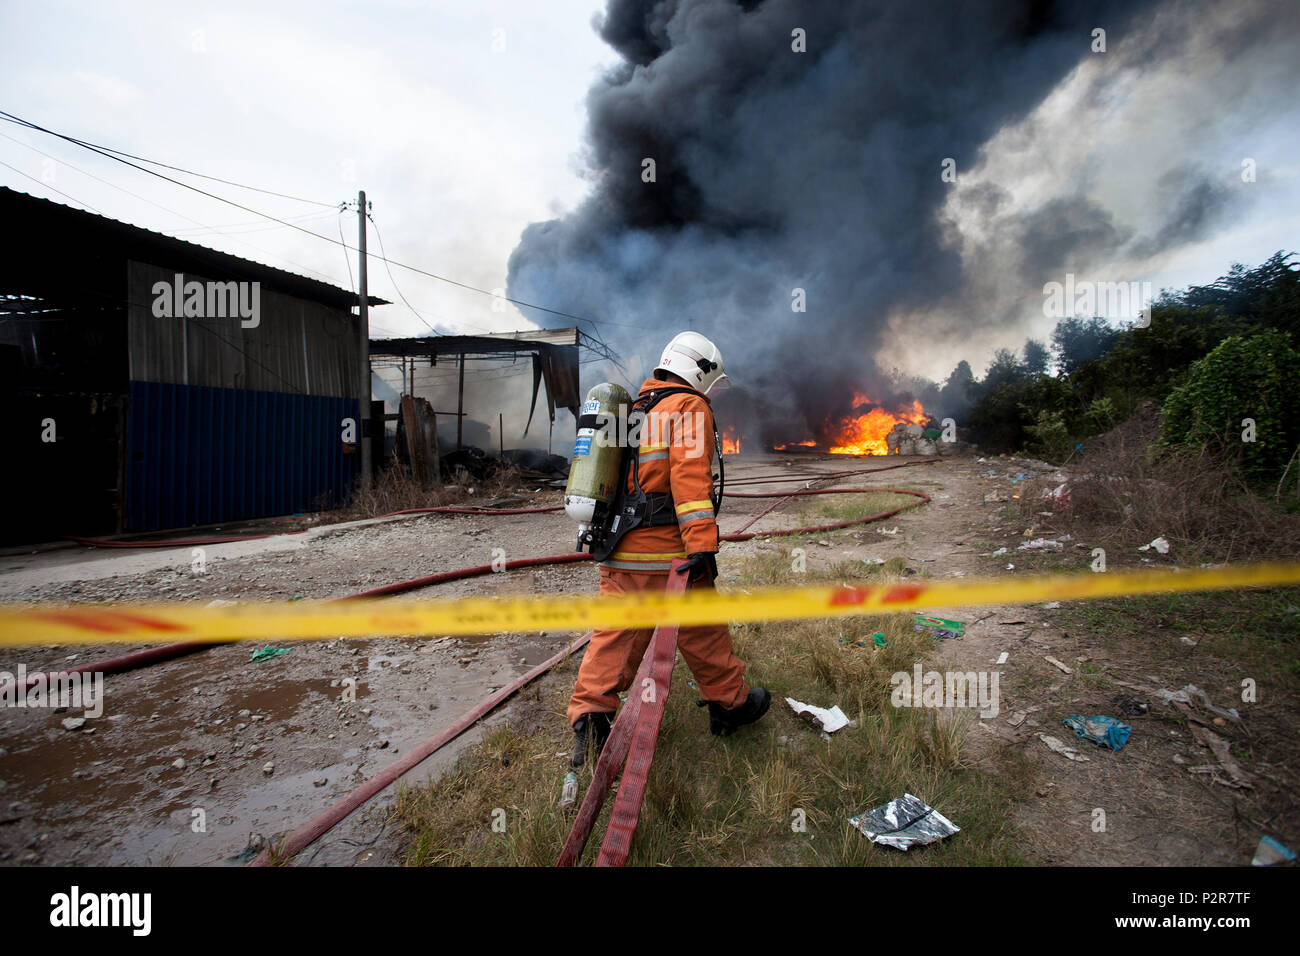 A fireman is pulling a firehose towards a burning factory in Sungai Petani. The fire broke at 1:00 PM and razed a plastic recycling centre, a plywood processing factory and a casket factory. More than 20 fire trucks were dispersed to control the massive fire due to wind condition and flammable products. - Stock Image